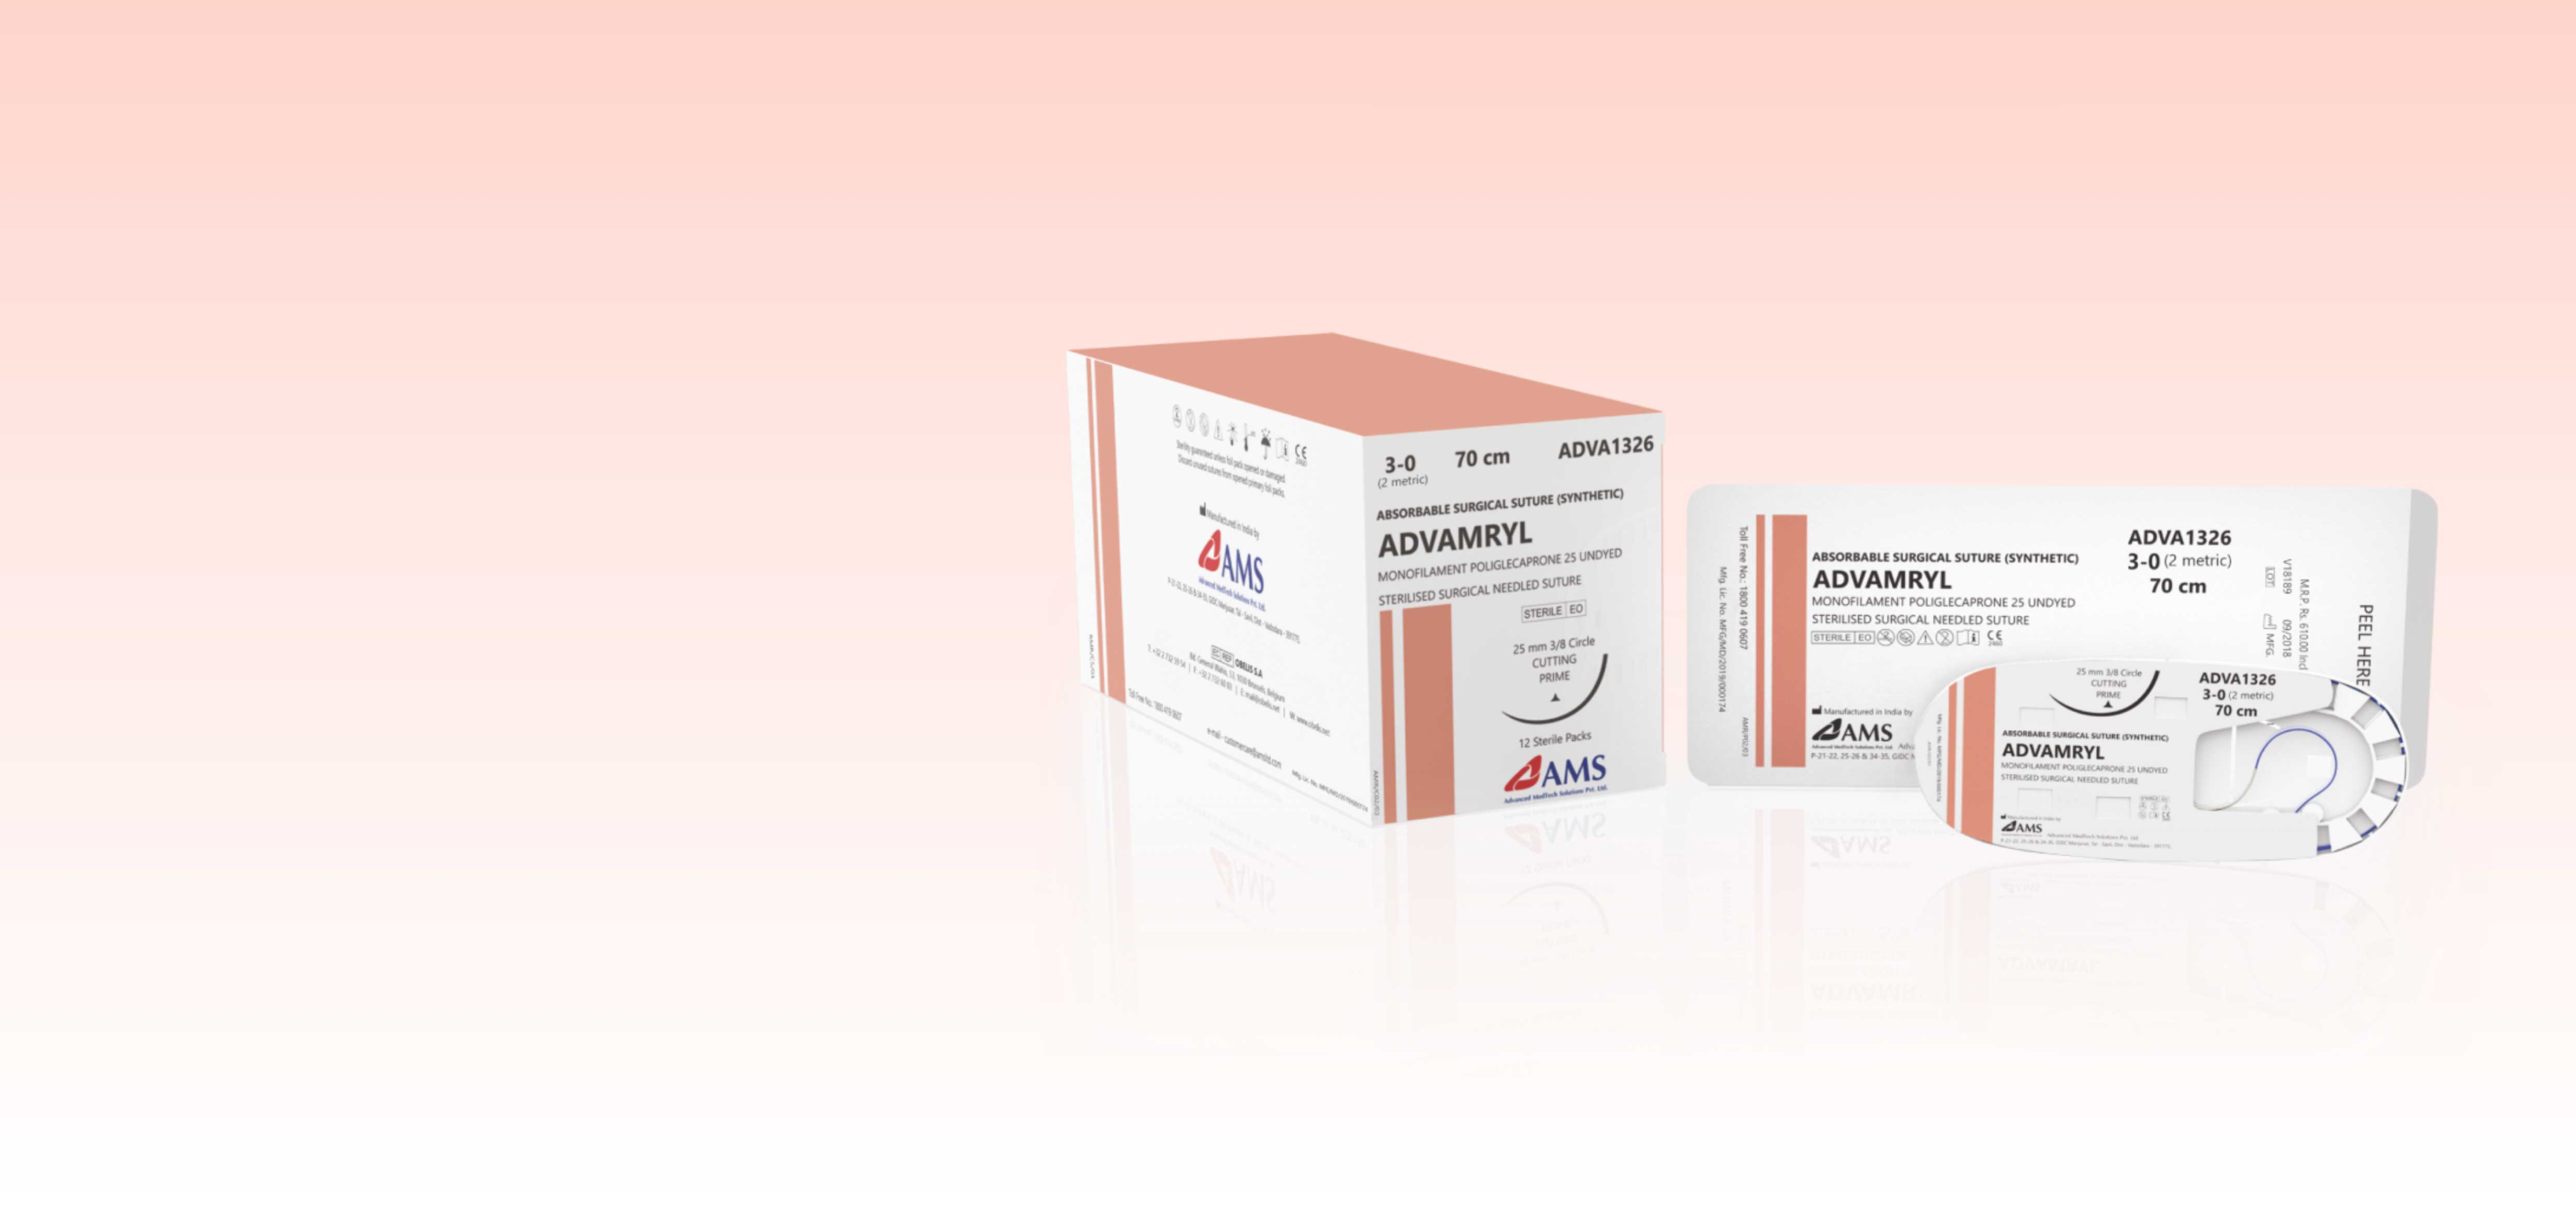 ADVAMRYL <span>Poliglecaprone-25 </span><small>Monofilament Synthetic Absorbable Surgical Suture</small>